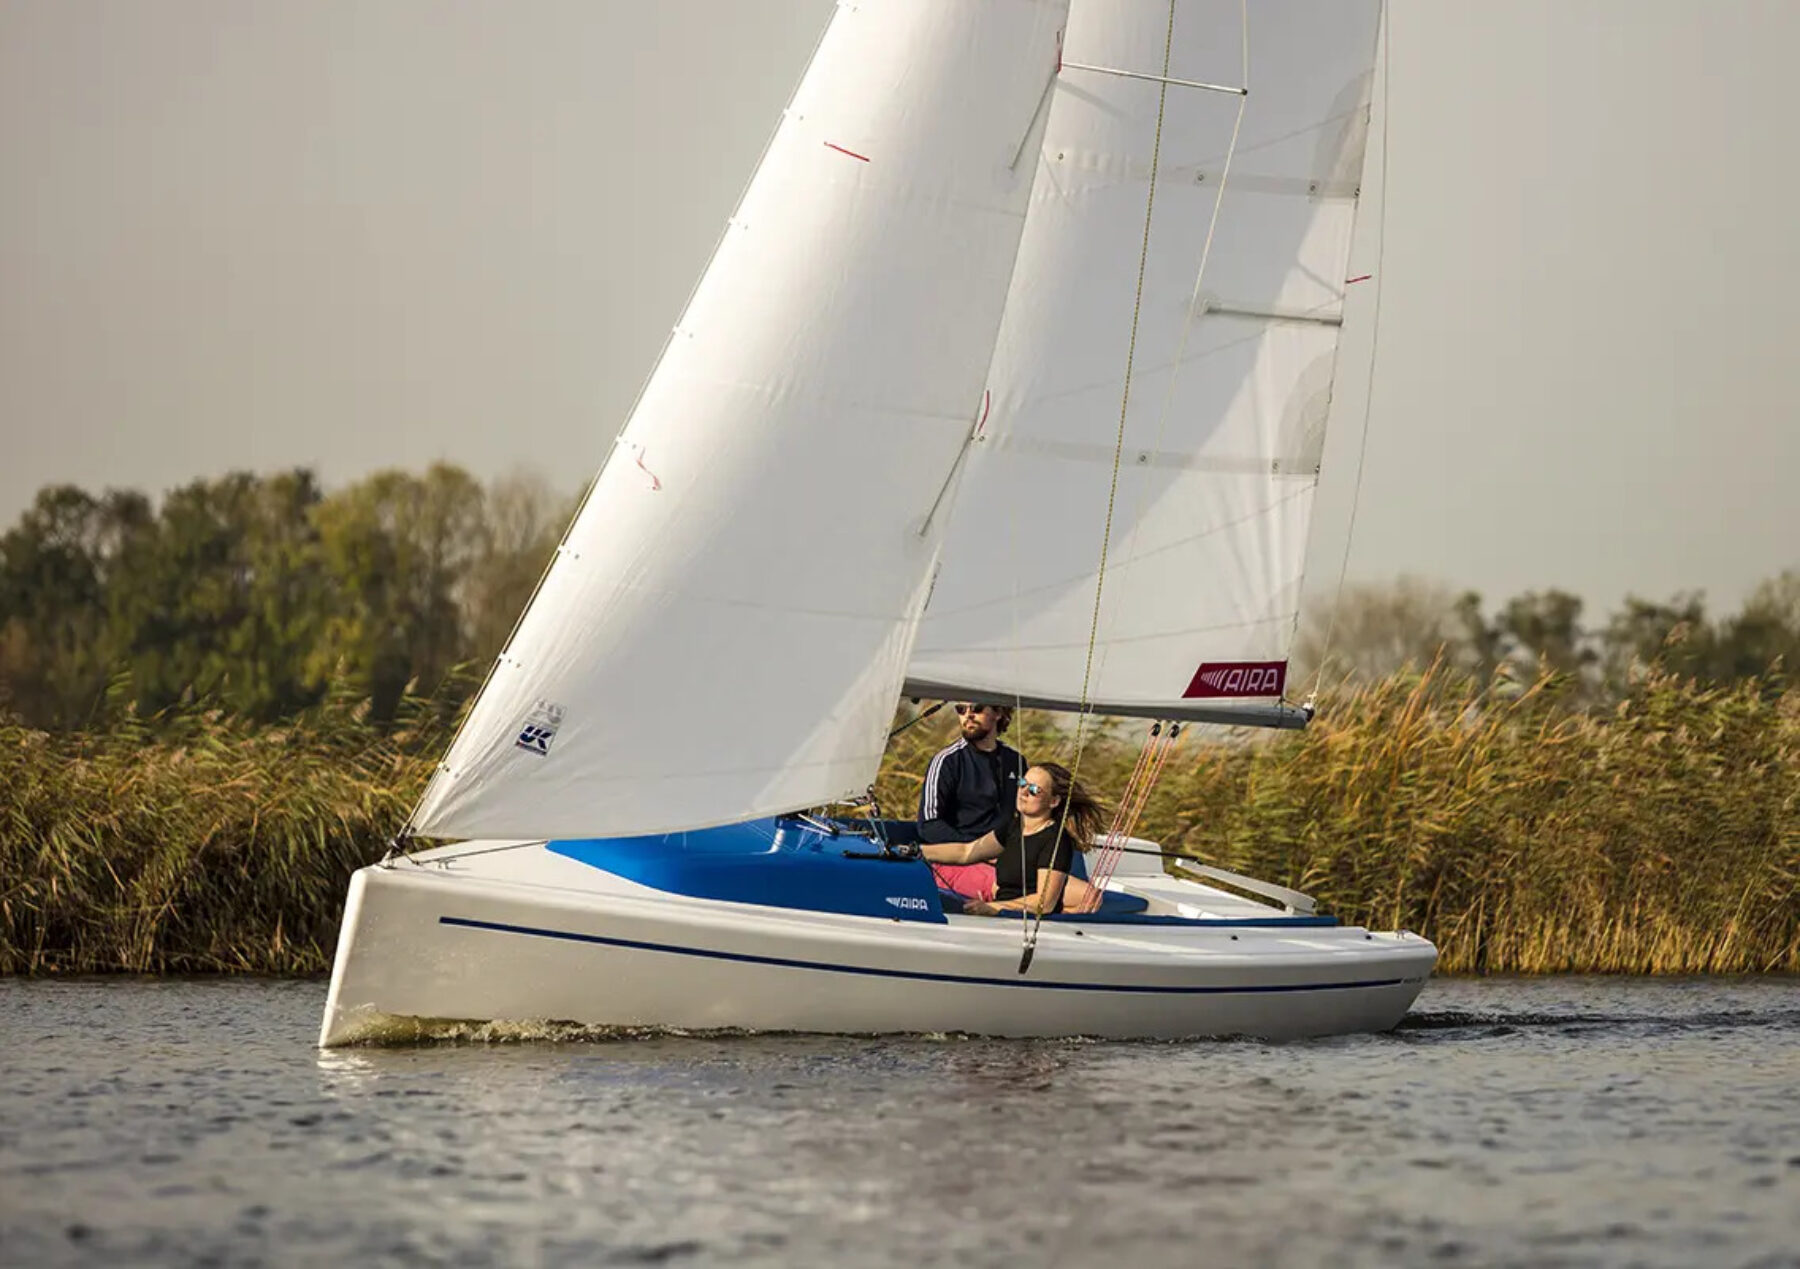 'This clever new Dutch Boat' — Yachting World